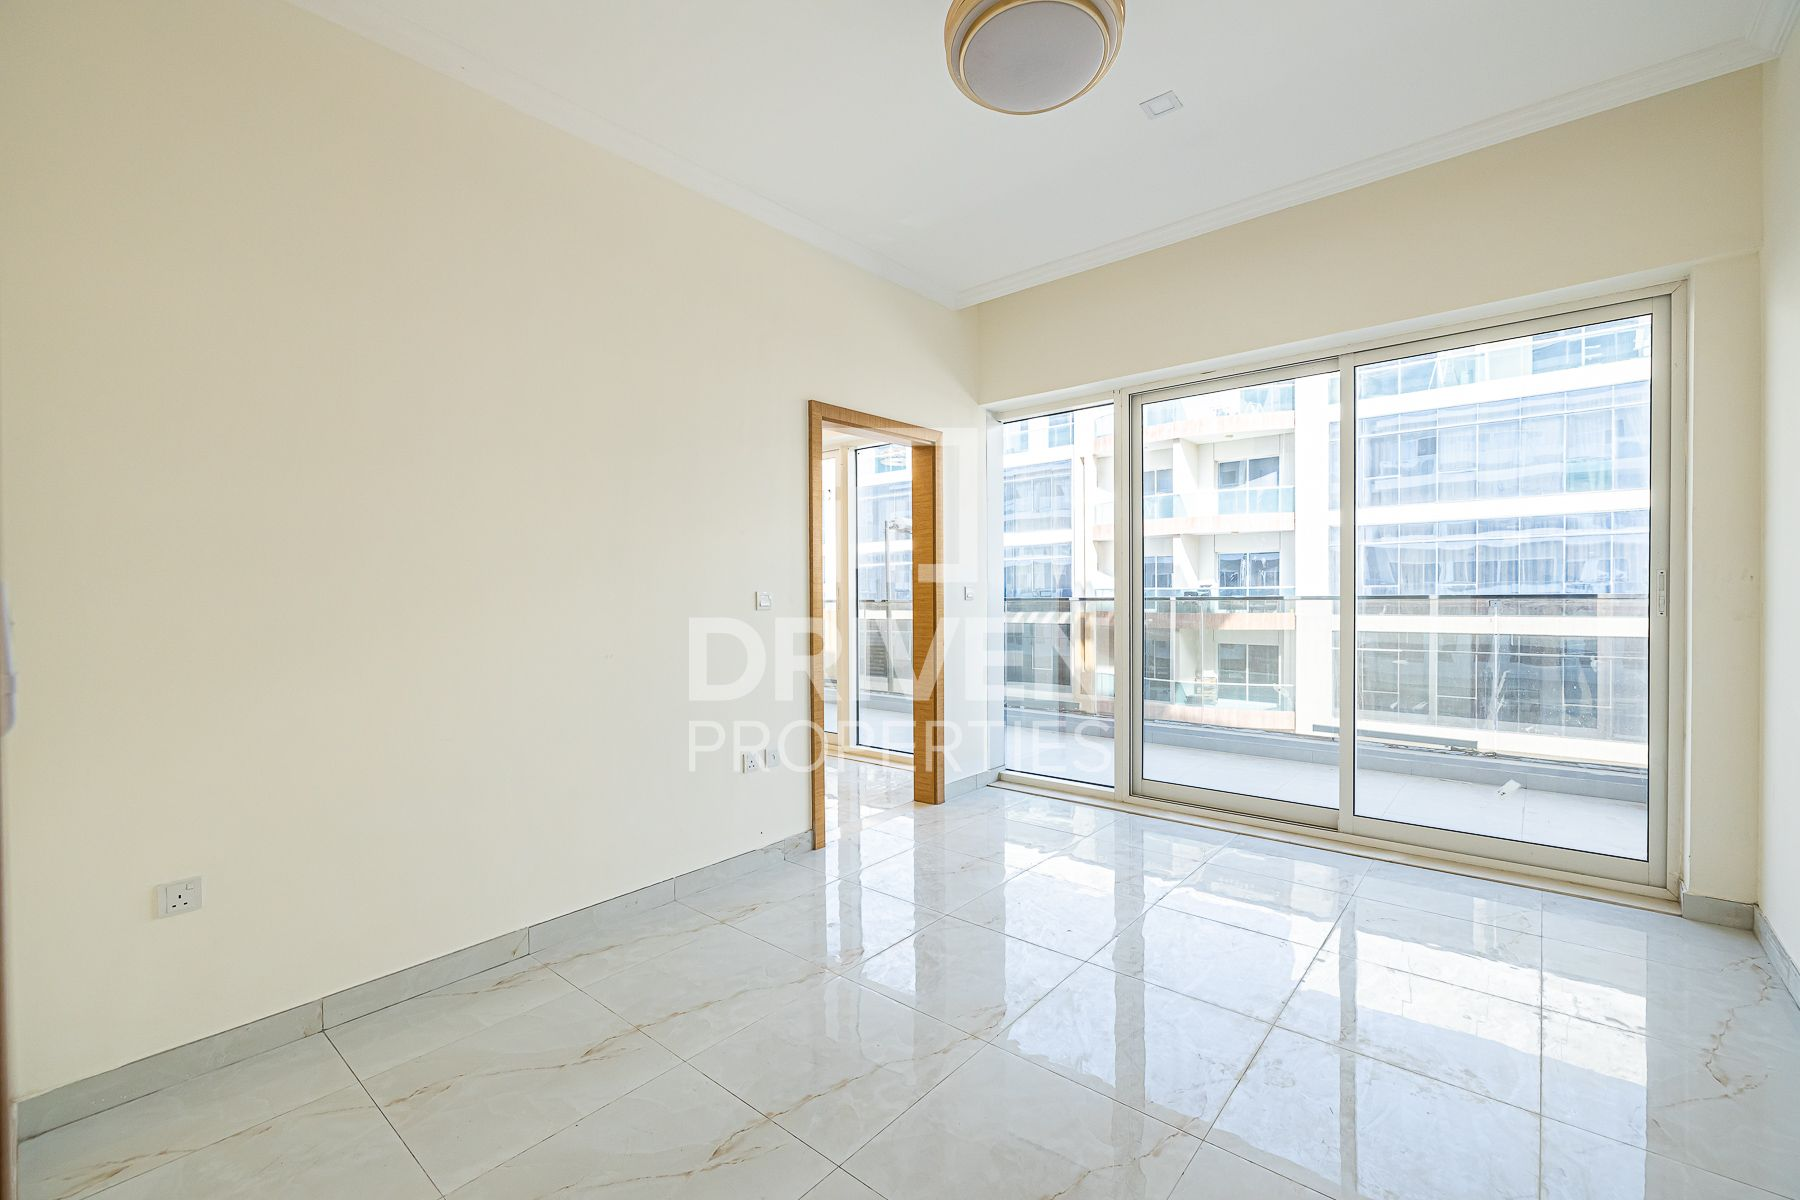 Apartment for Sale in Dar Al Jawhara - Jumeirah Village Circle